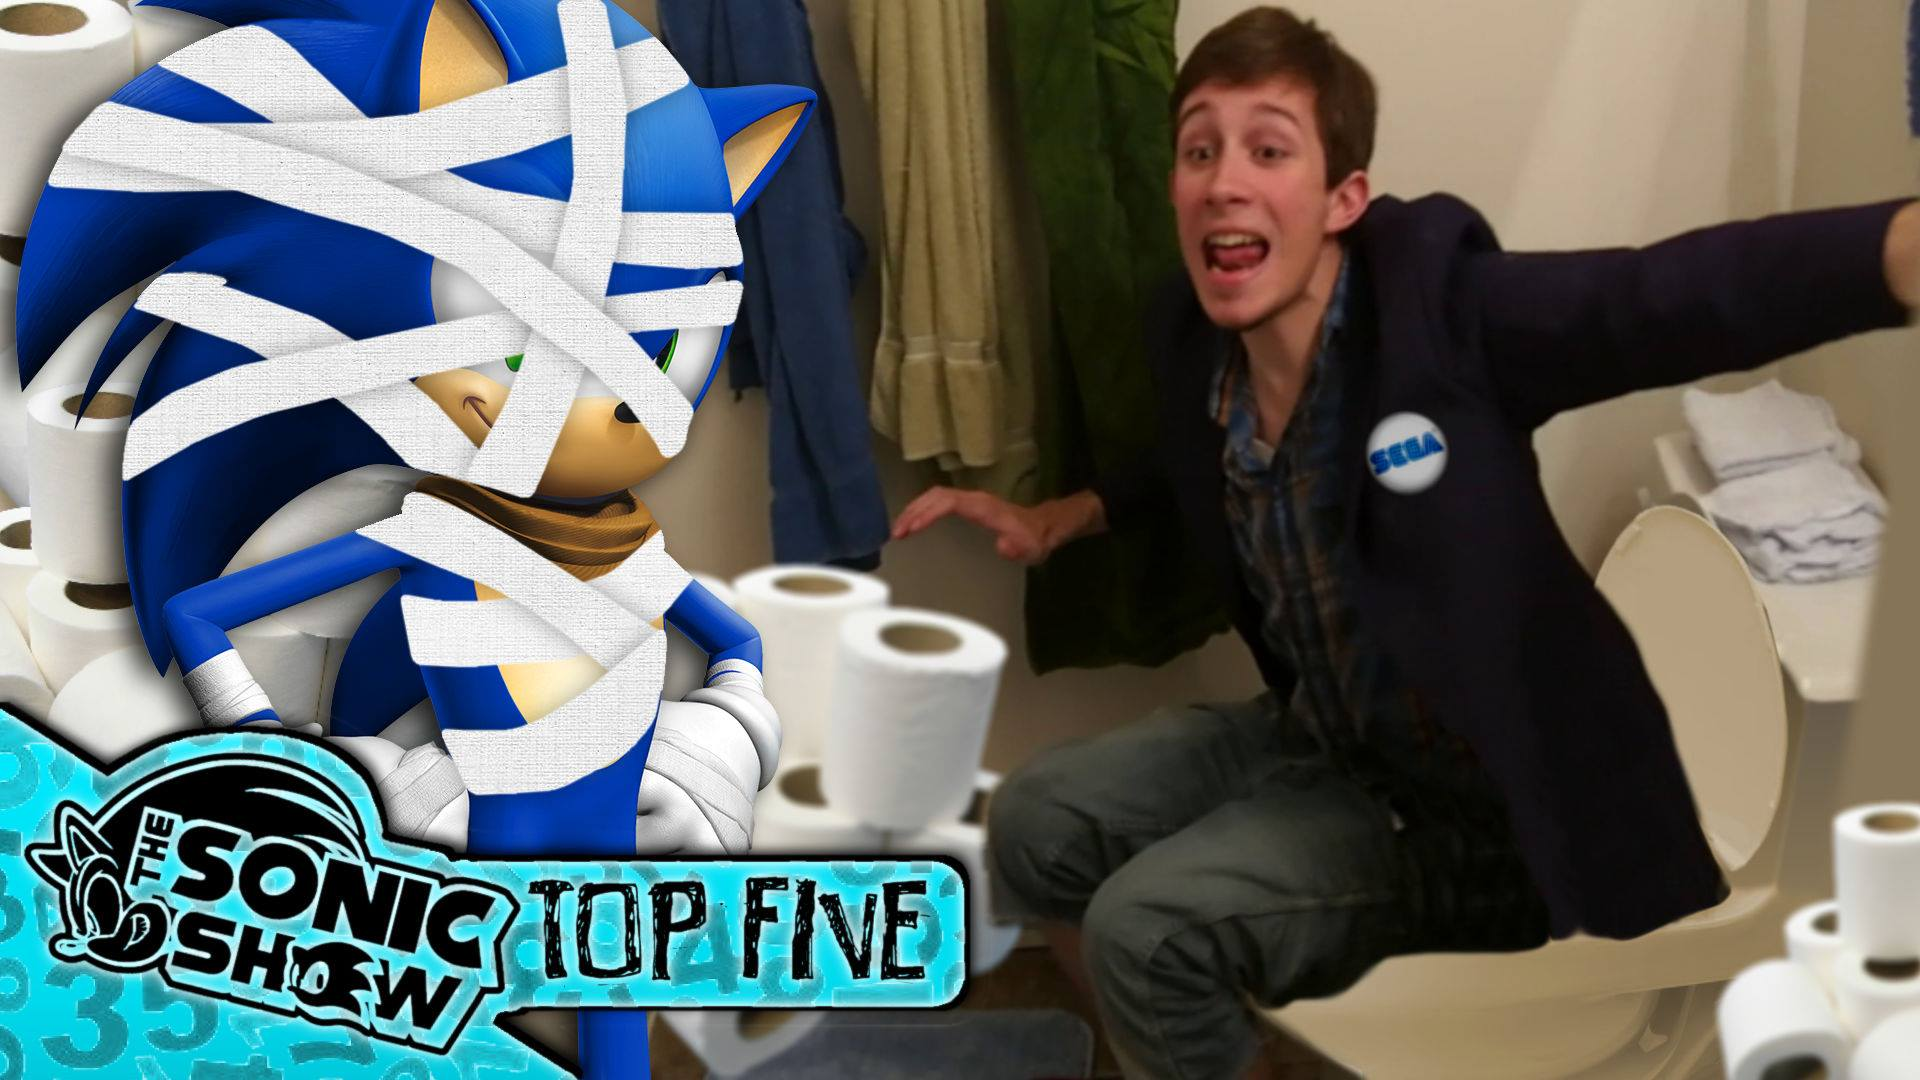 Top 10 Things to do with Sonic's bandages